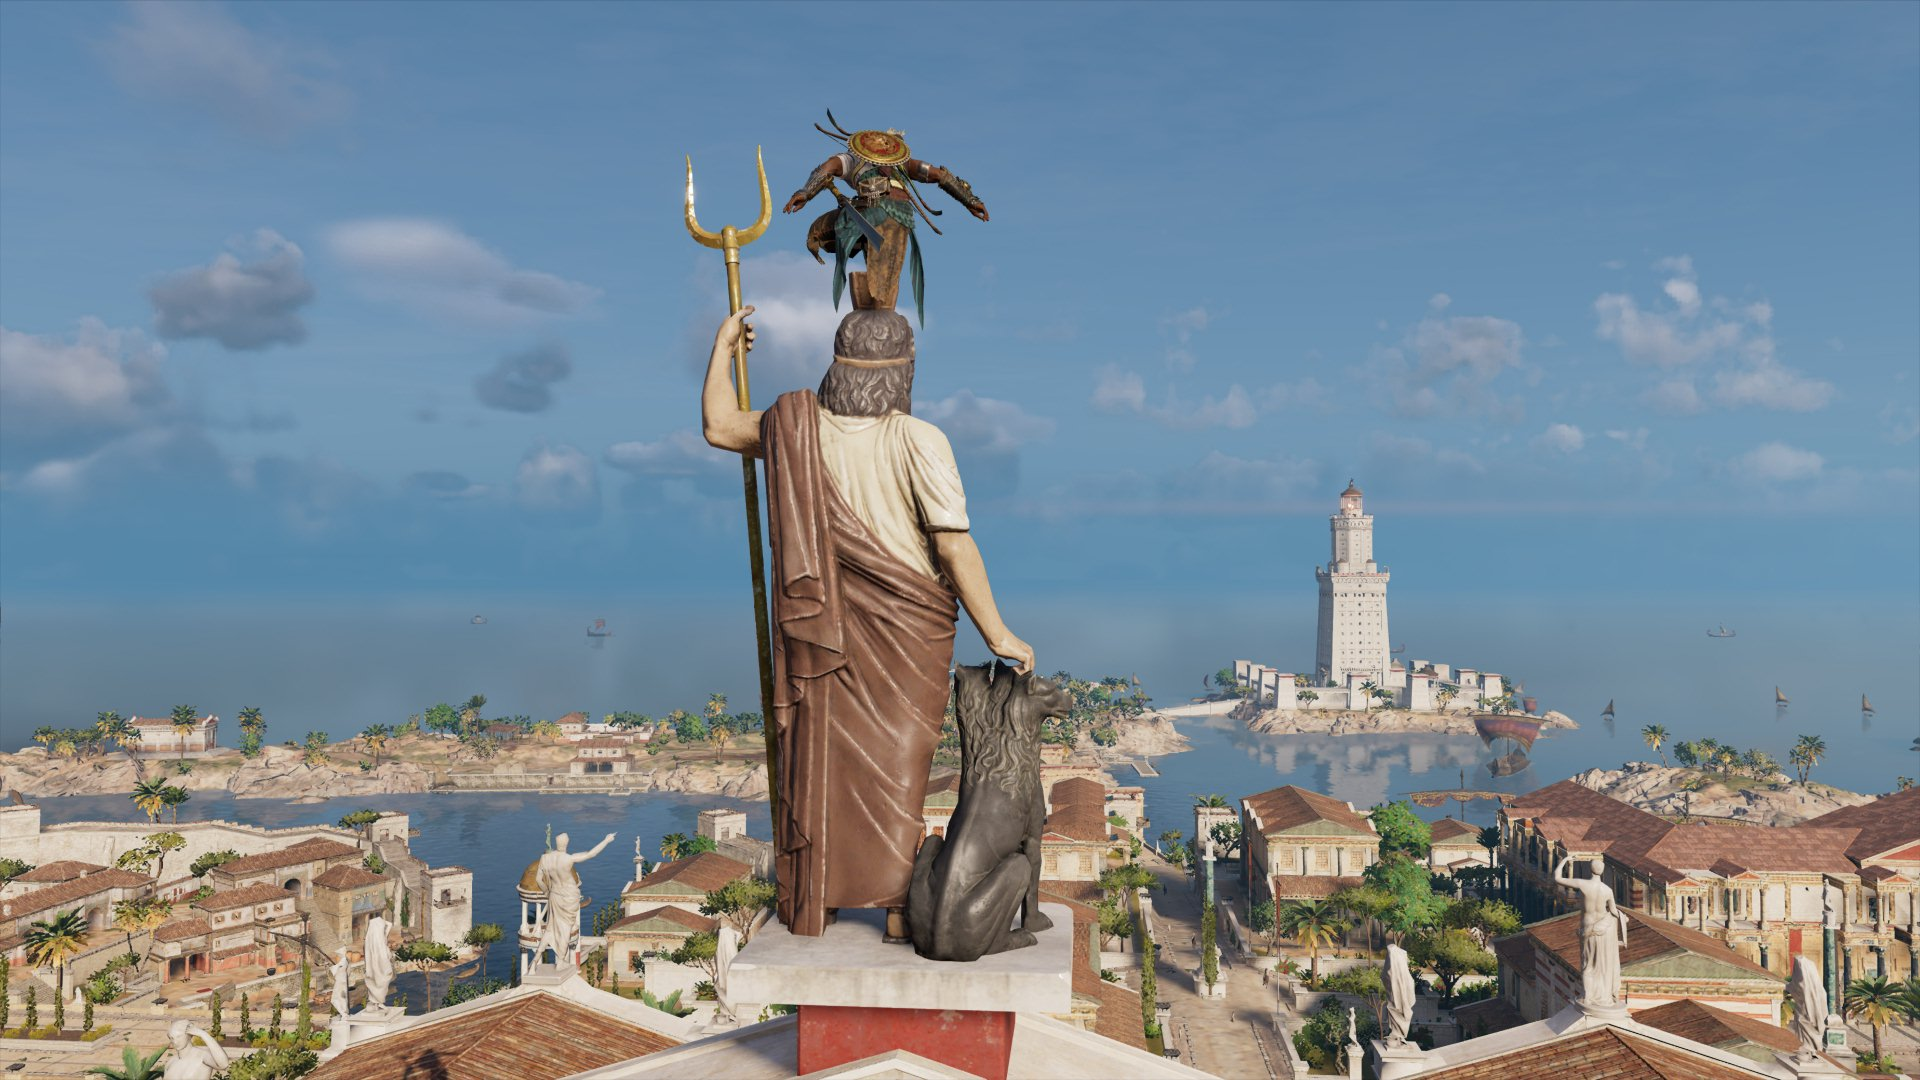 20180211134903.jpg - Assassin's Creed: Origins